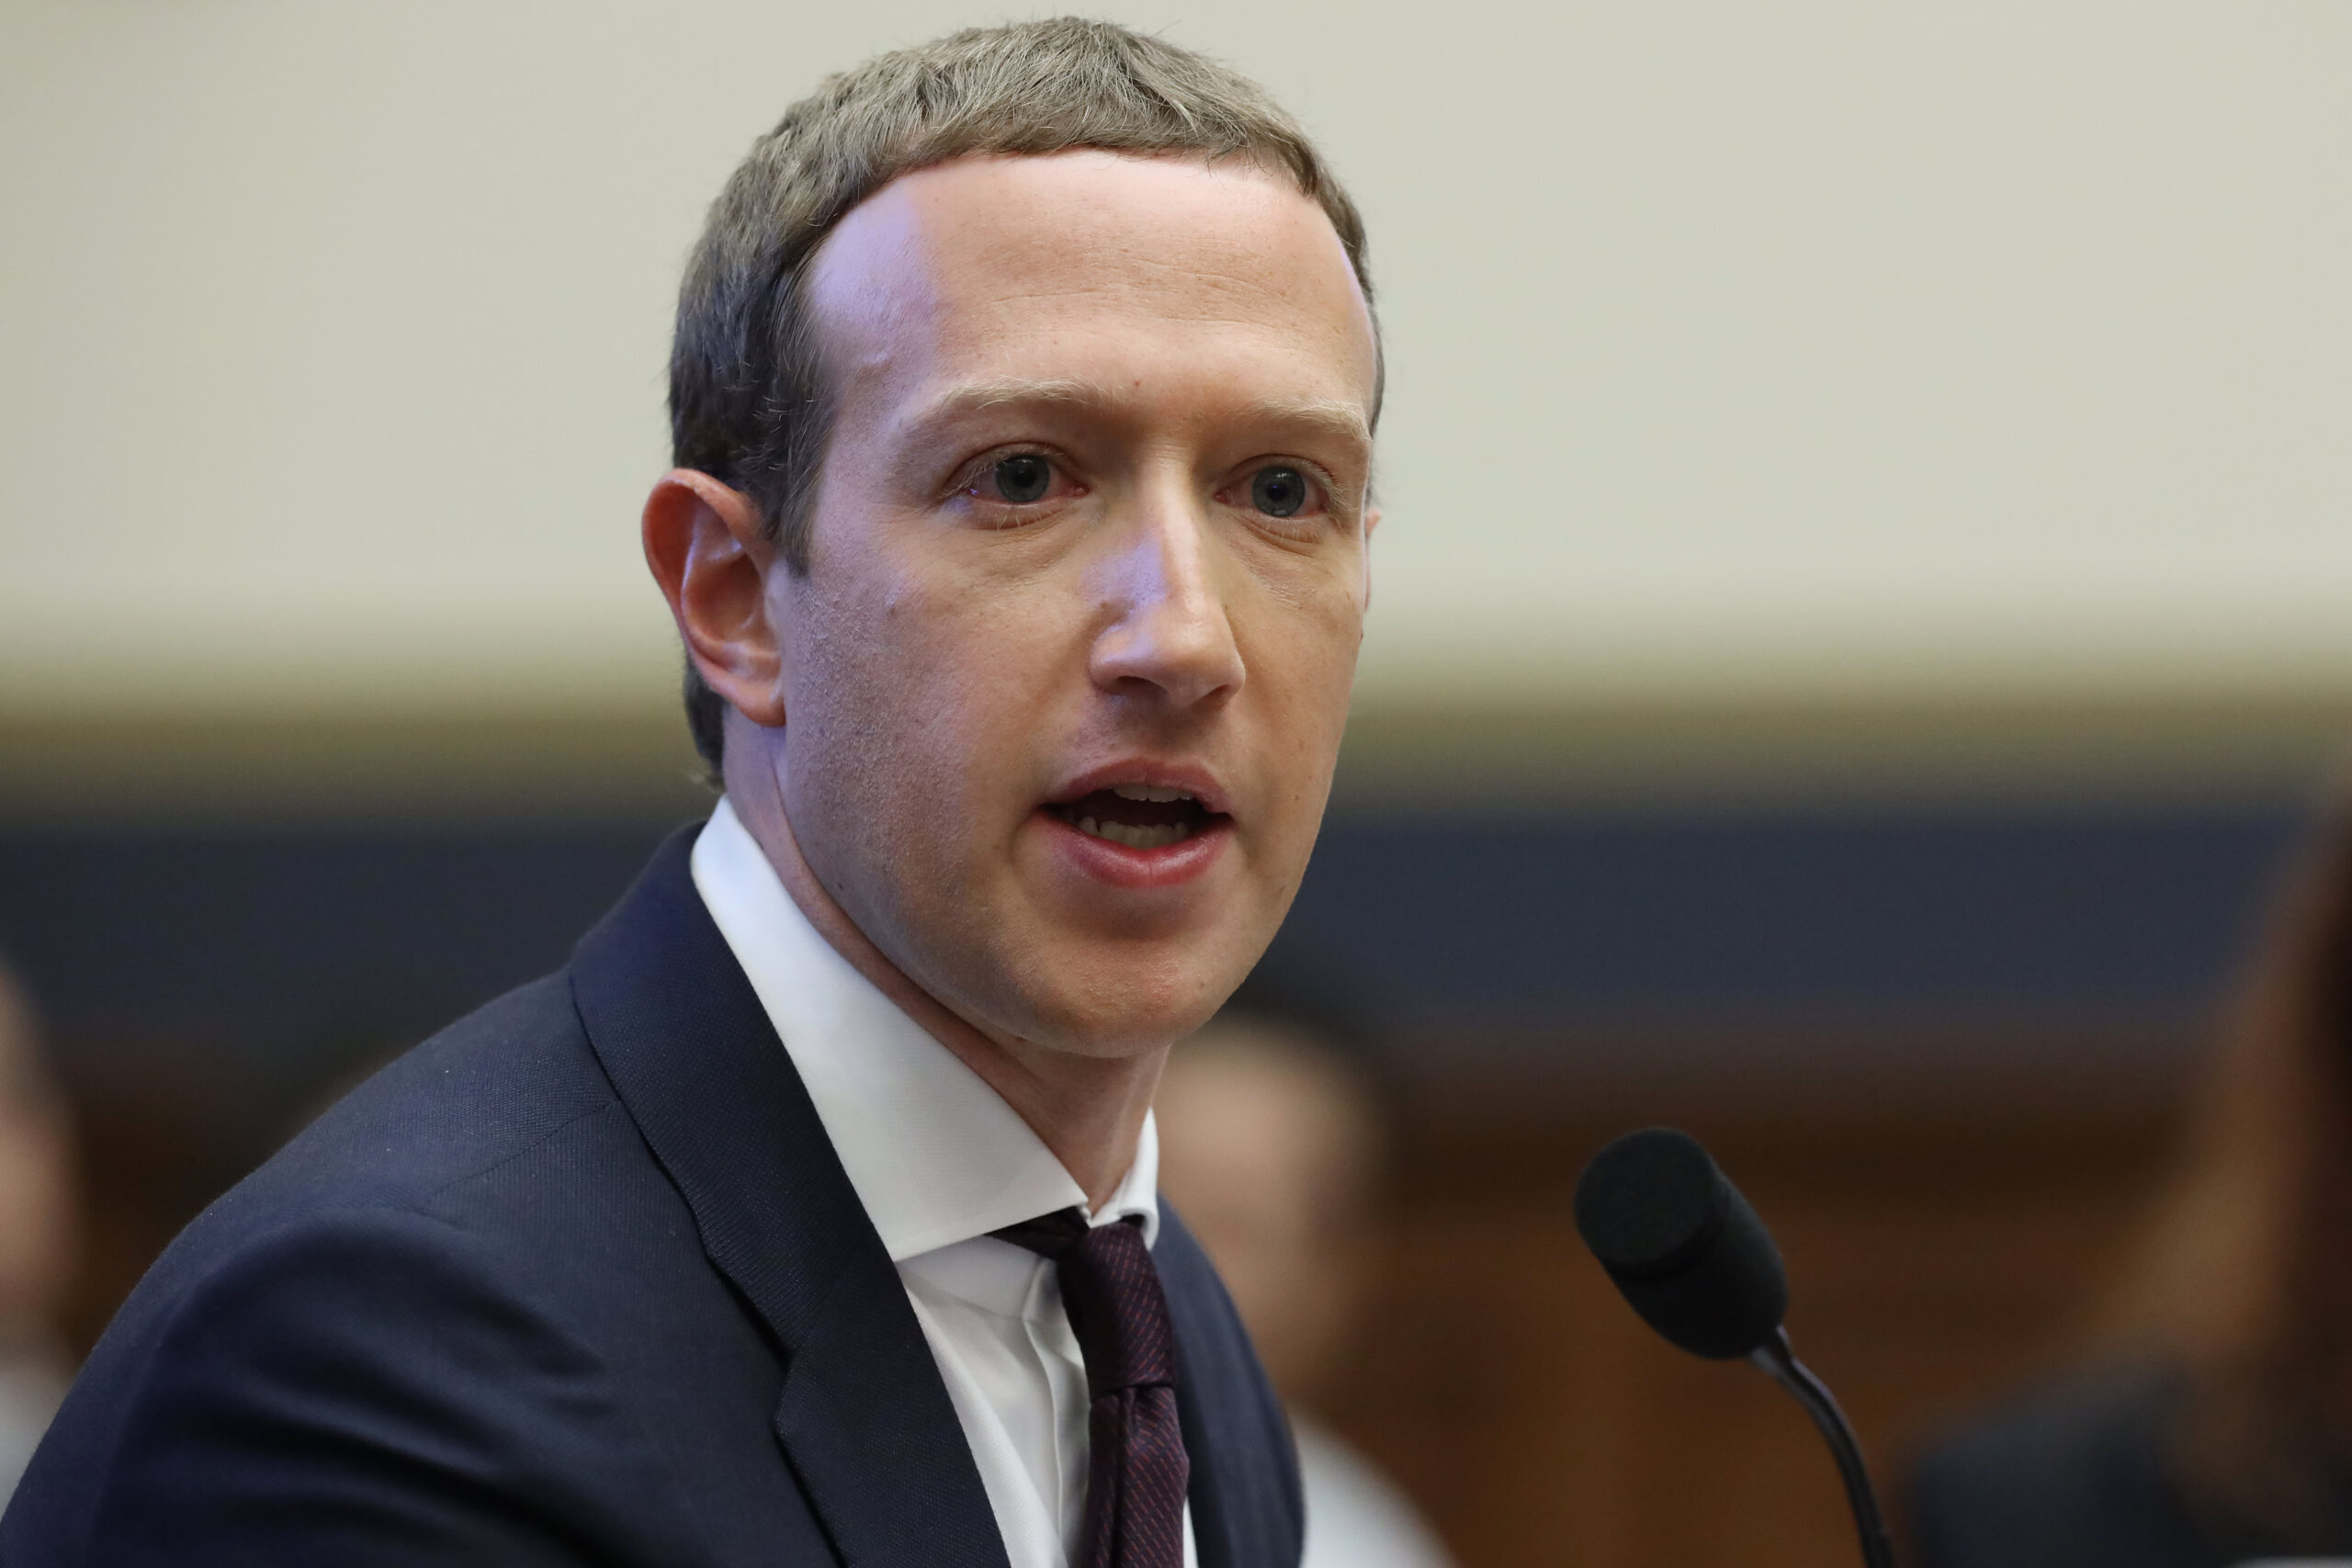 Facebook may be in stronger position after Apple iOS 14